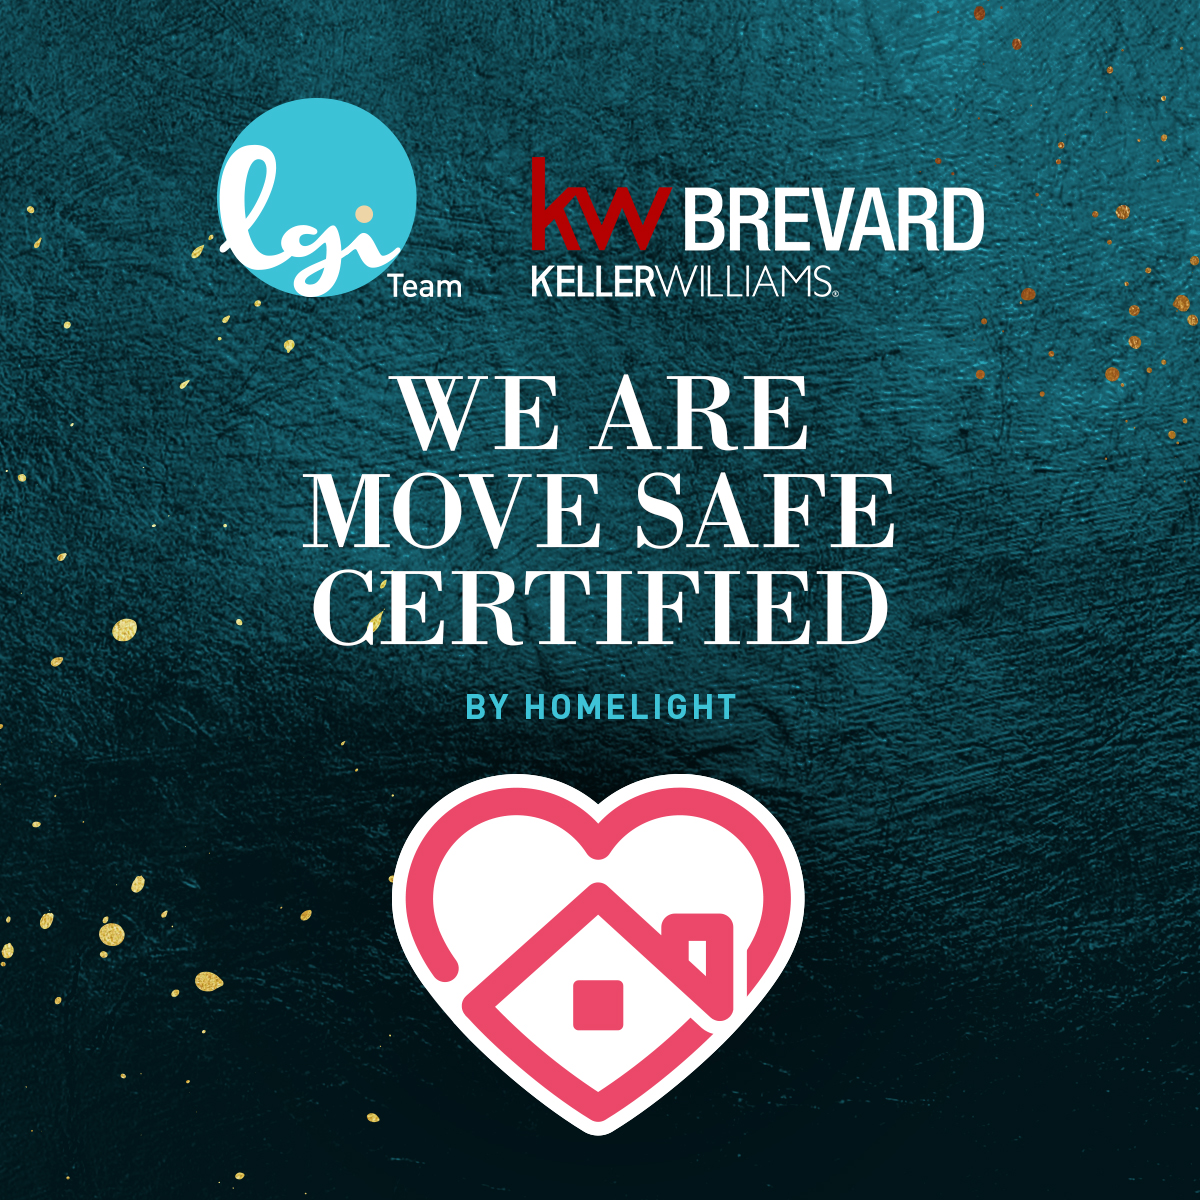 Team LGI at Keller Williams Brevard are Certified Home Safe Experts.